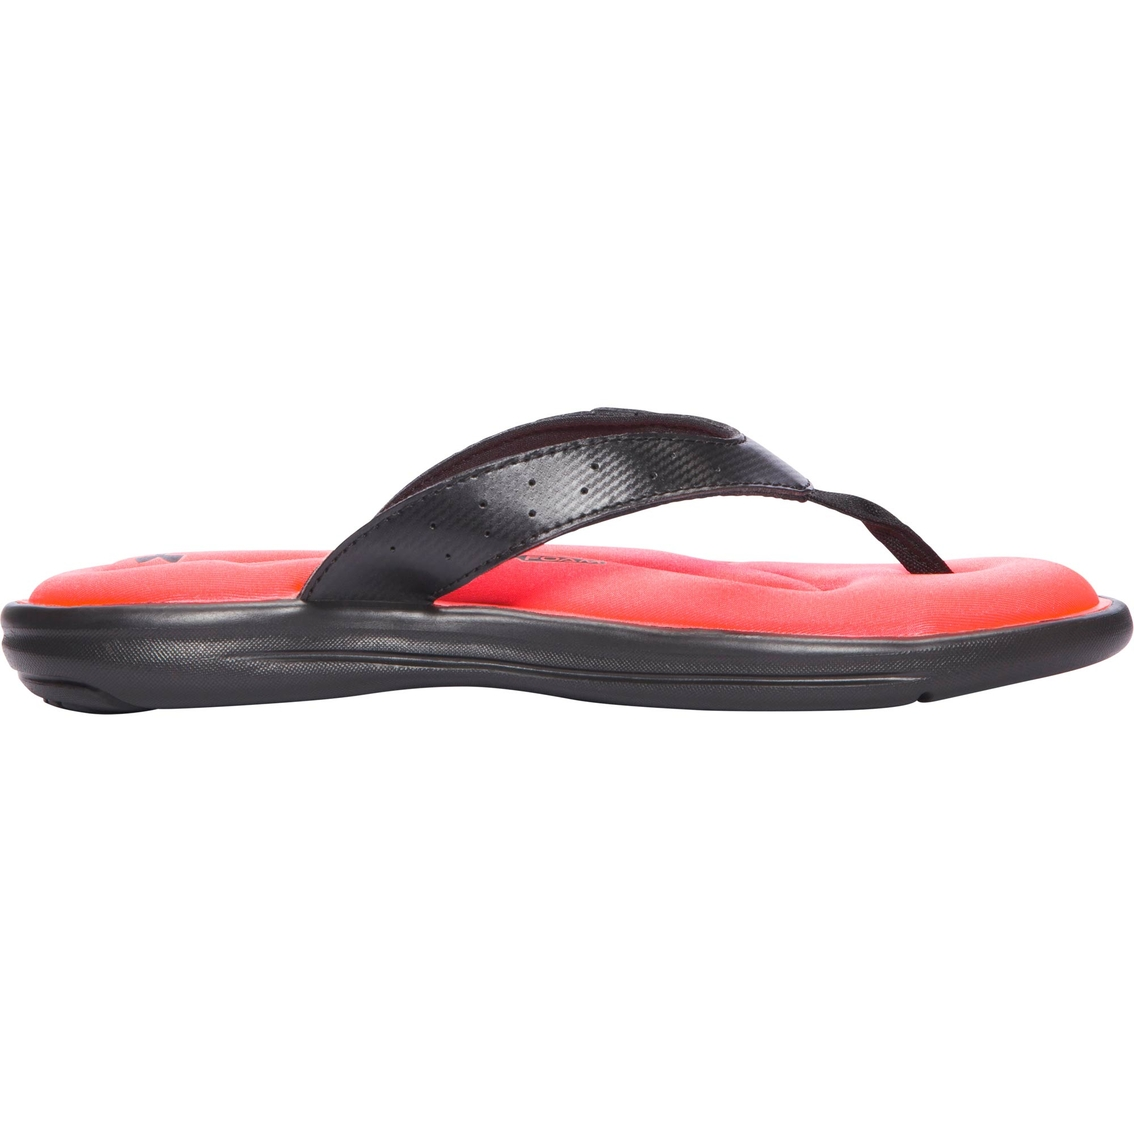 6e5b381fe272 Under Armour Women s Ua Marbella V Slide Sandals